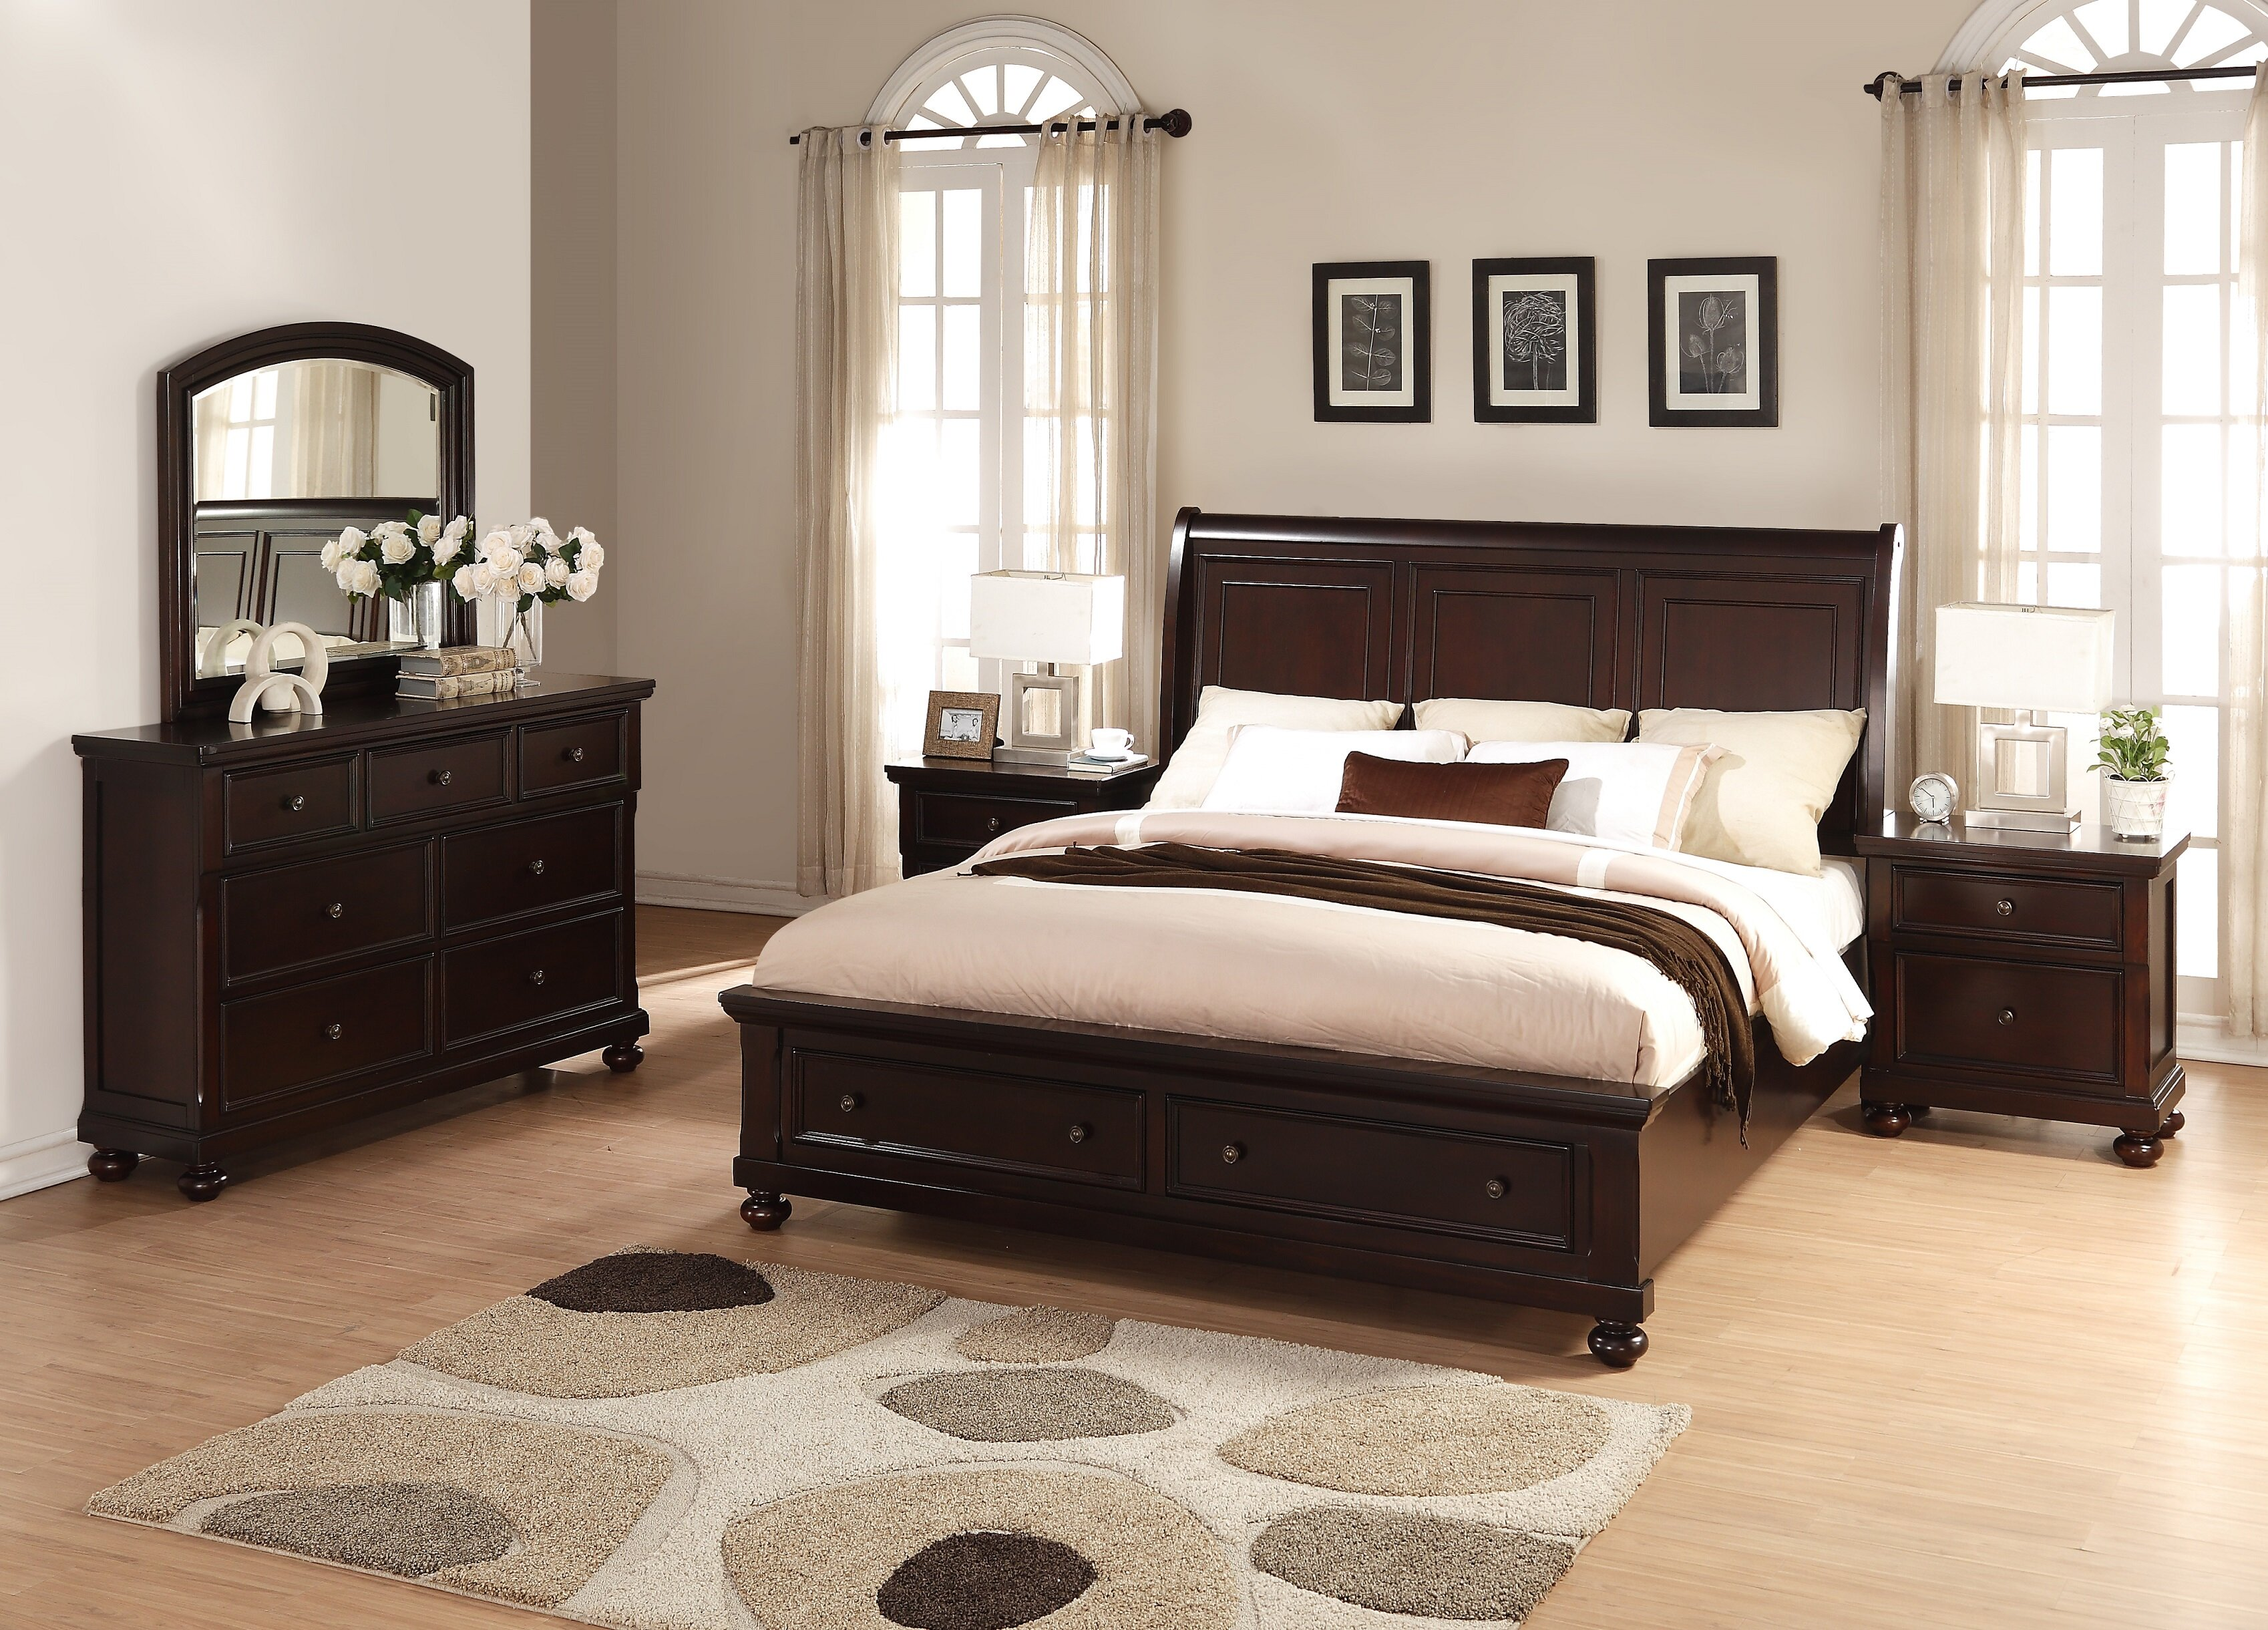 Breakwater Bay Jaimes King Platform 5 Piece Bedroom Set | Wayfair